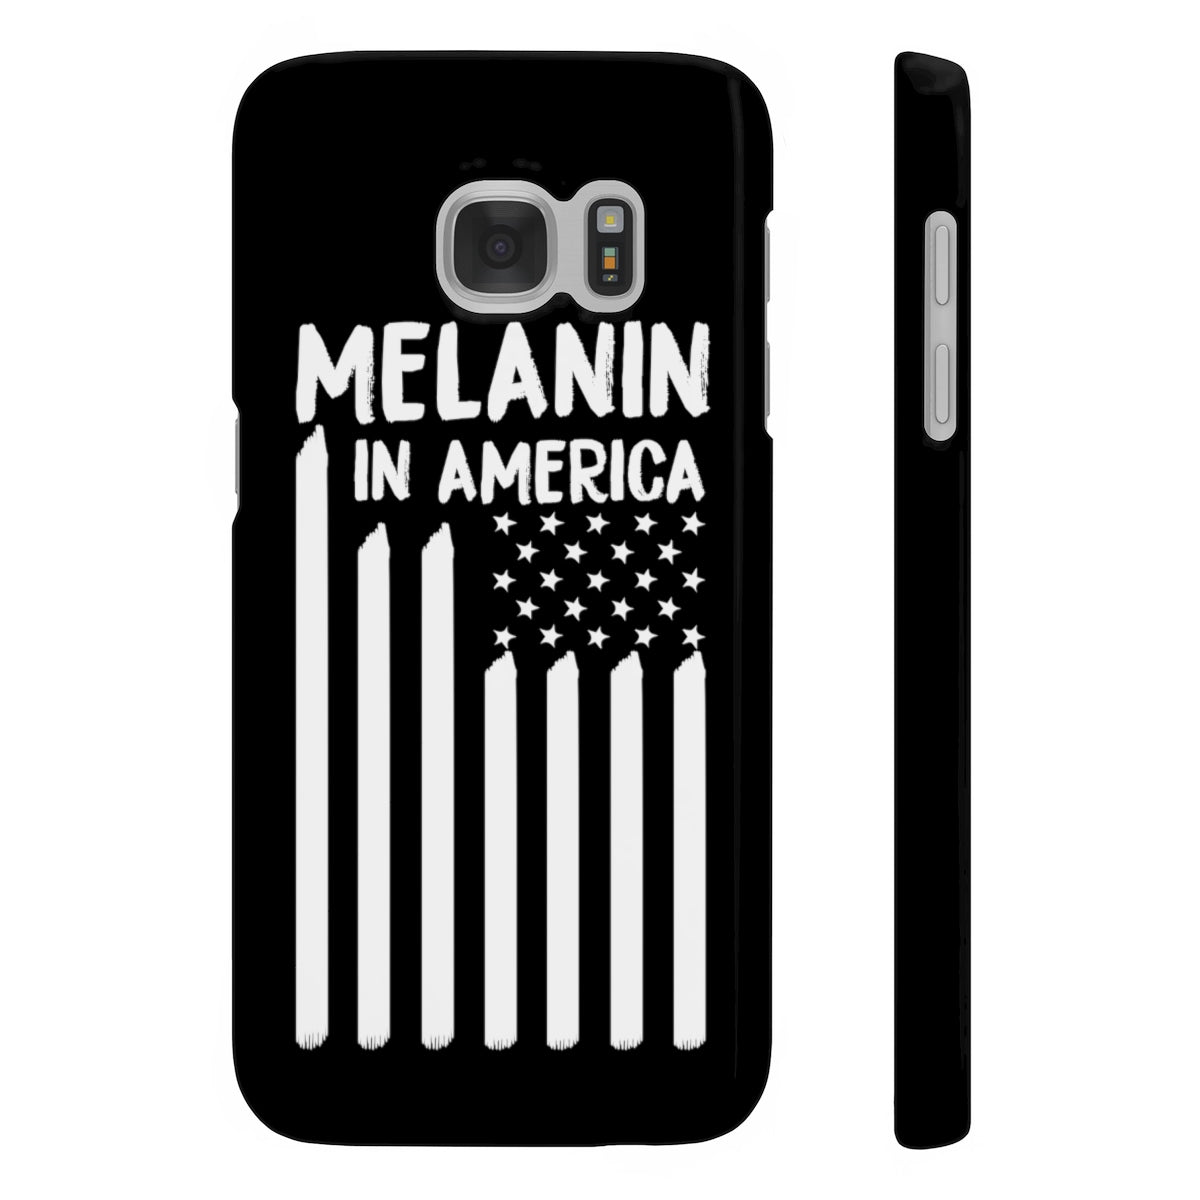 Melanin in America Slim Phone Cases